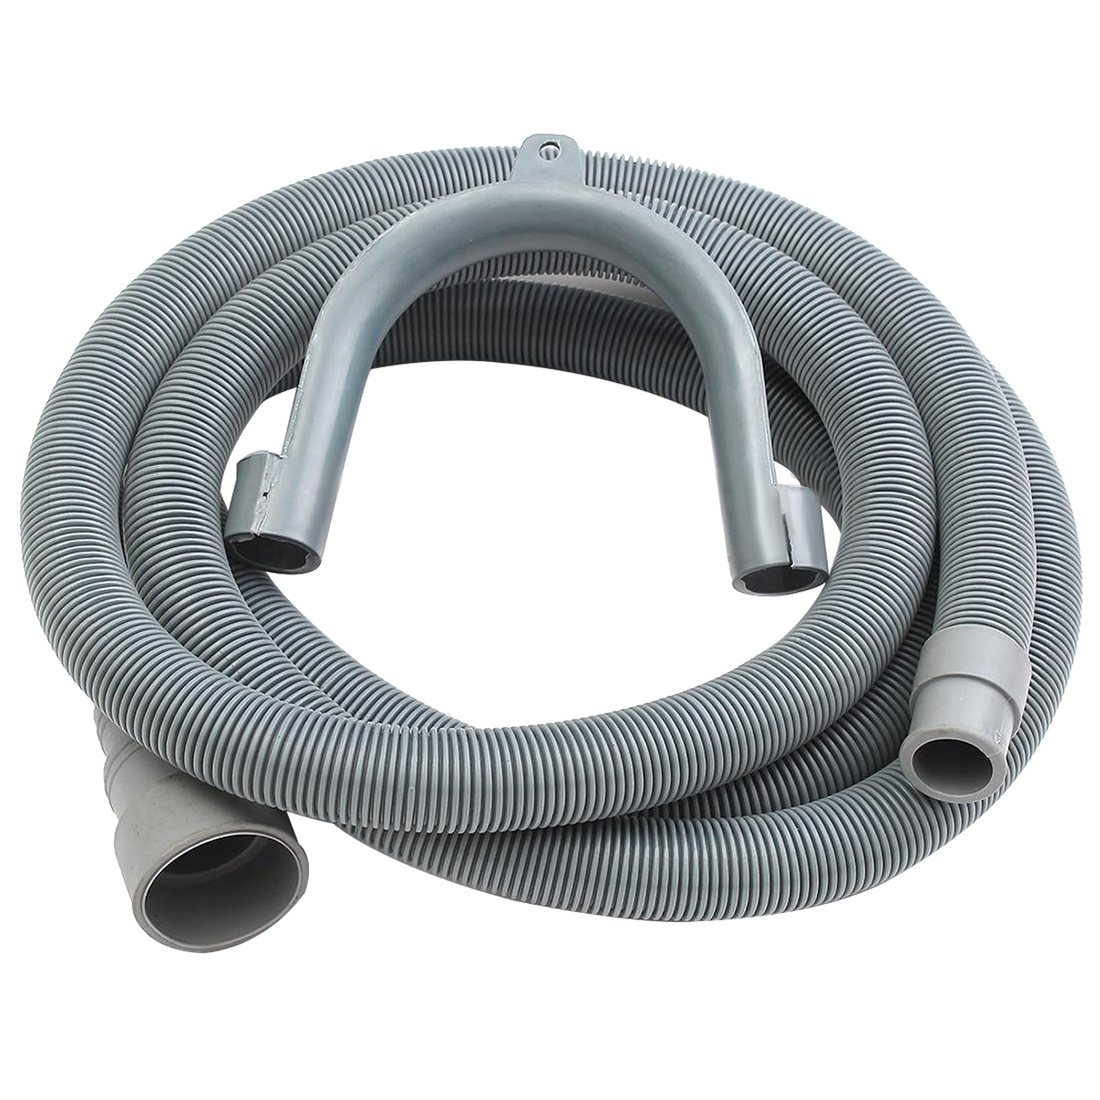 все цены на 2.5M Machine Dishwasher Drain Hose Extension Washing Pipe with Bracket Set Home Universal Kitchen Drainage Hose parts онлайн